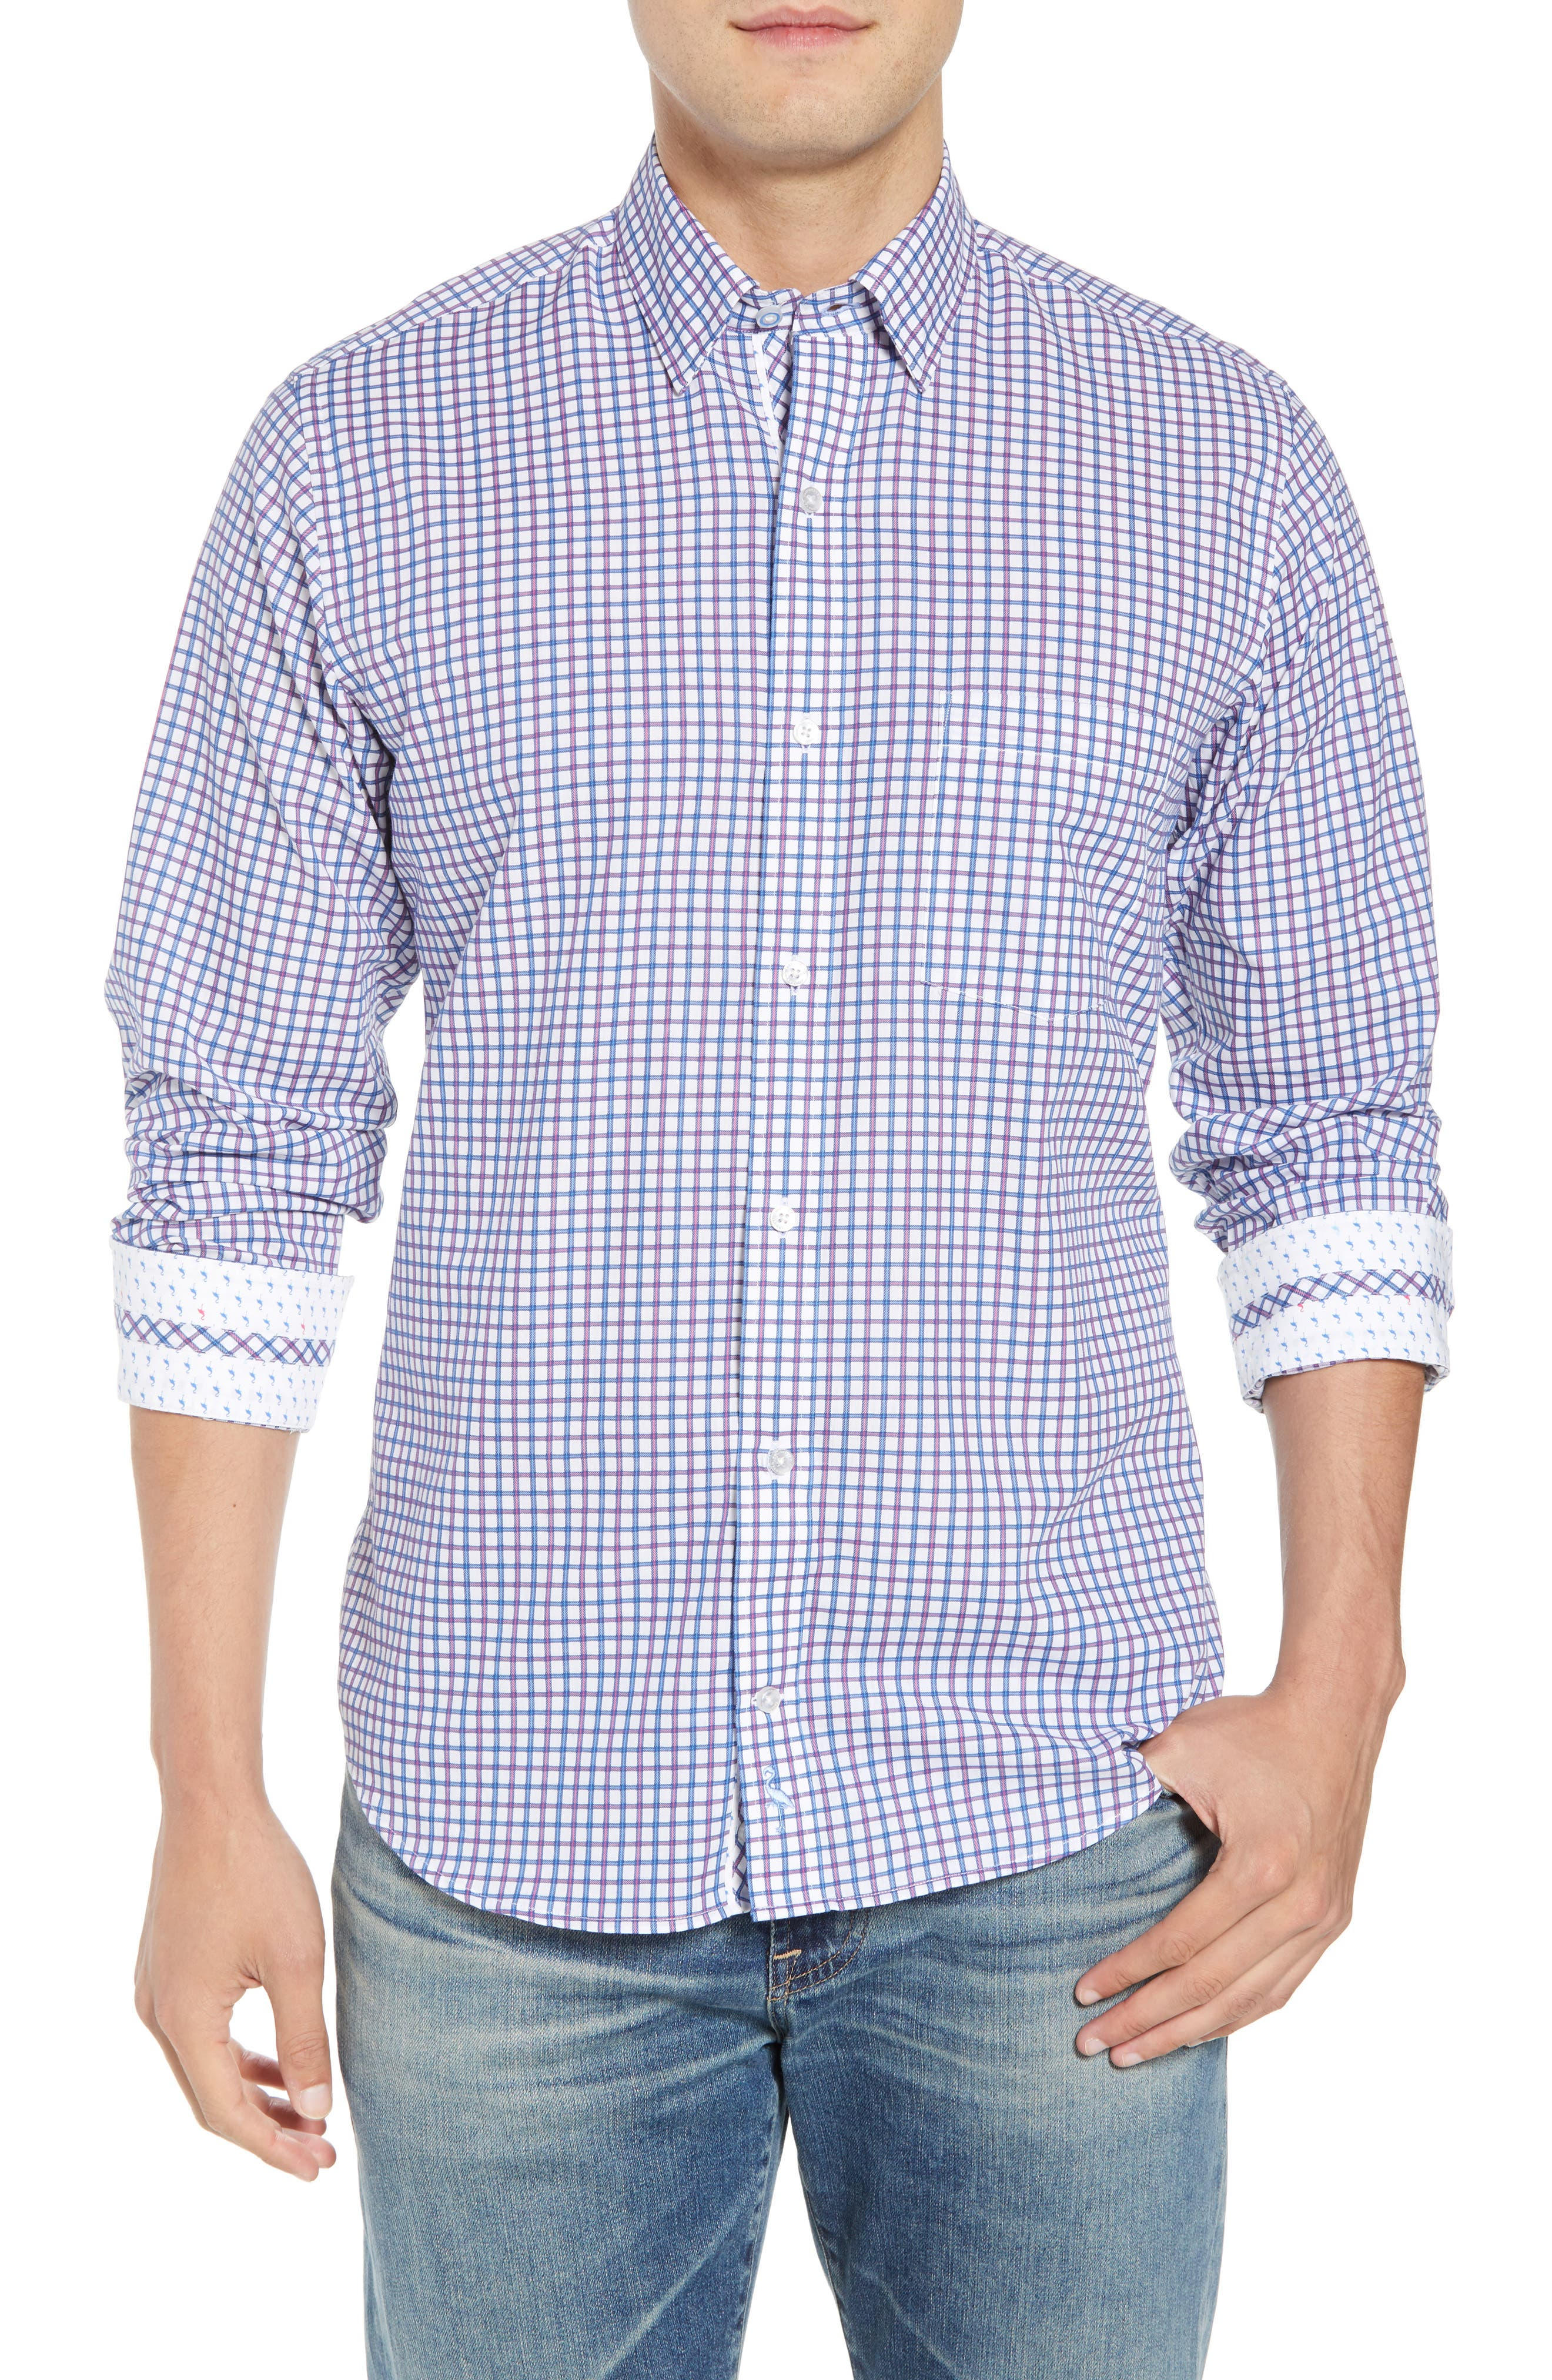 Beck Regular Fit Windowpane Sport Shirt,                             Main thumbnail 1, color,                             Blue